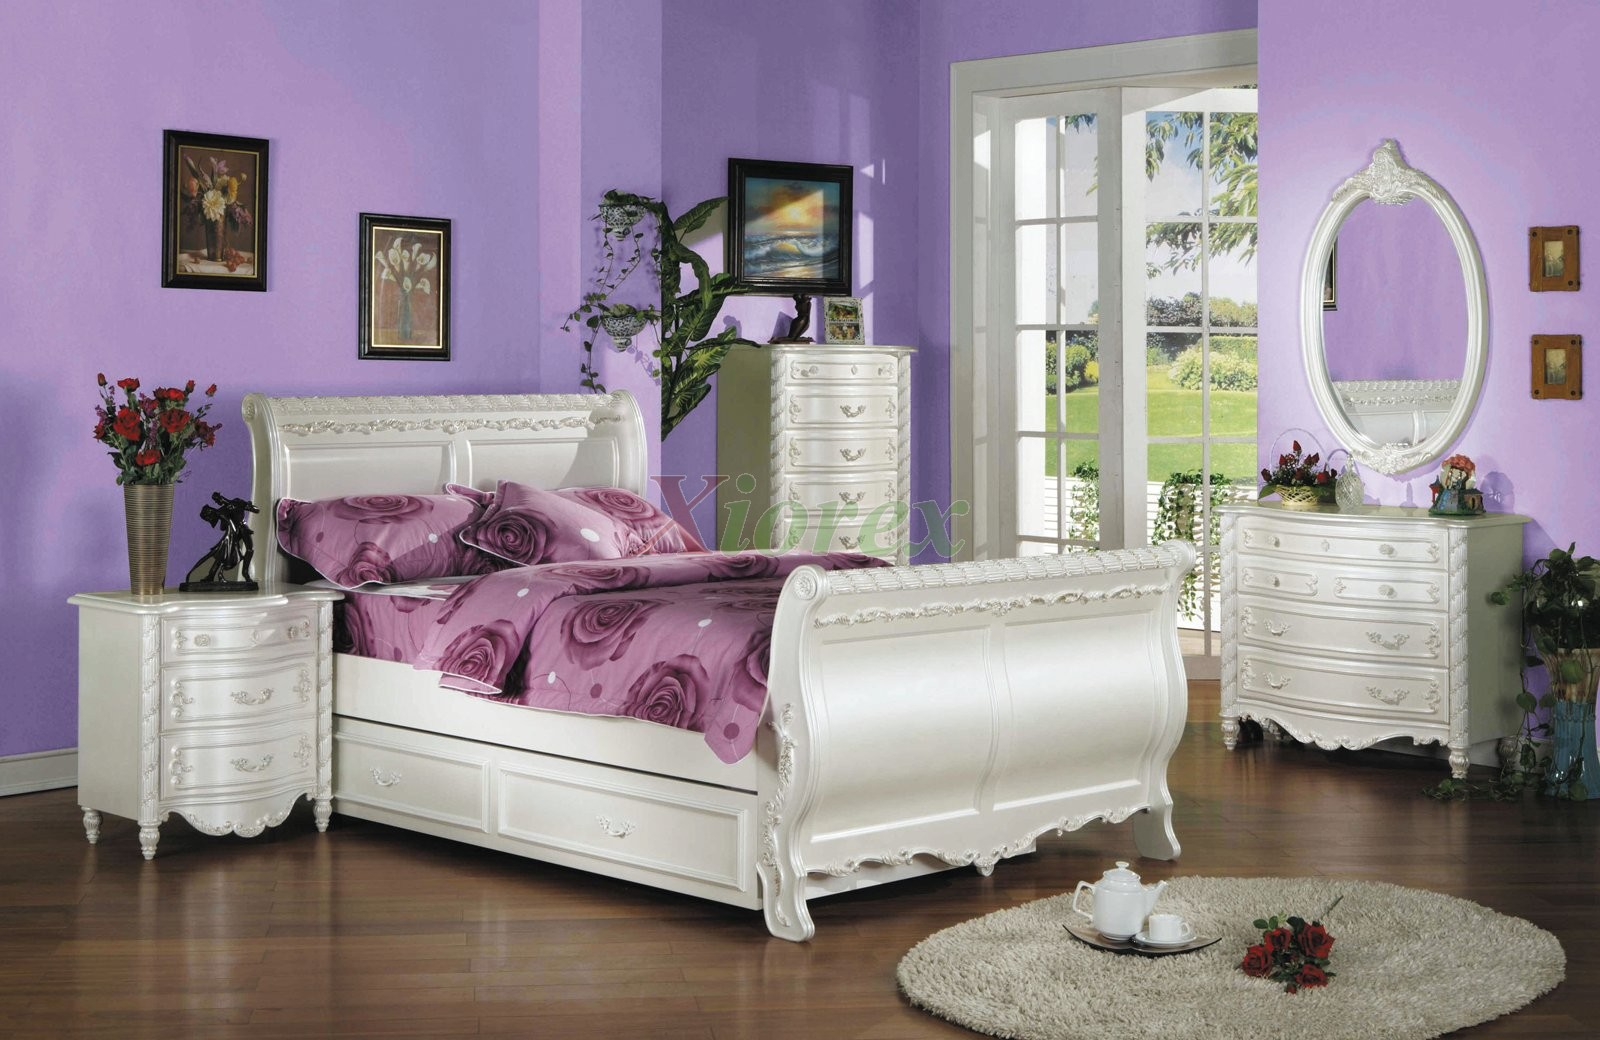 Home design martha girls bedroom furniture sets for Kids bedroom furniture sets